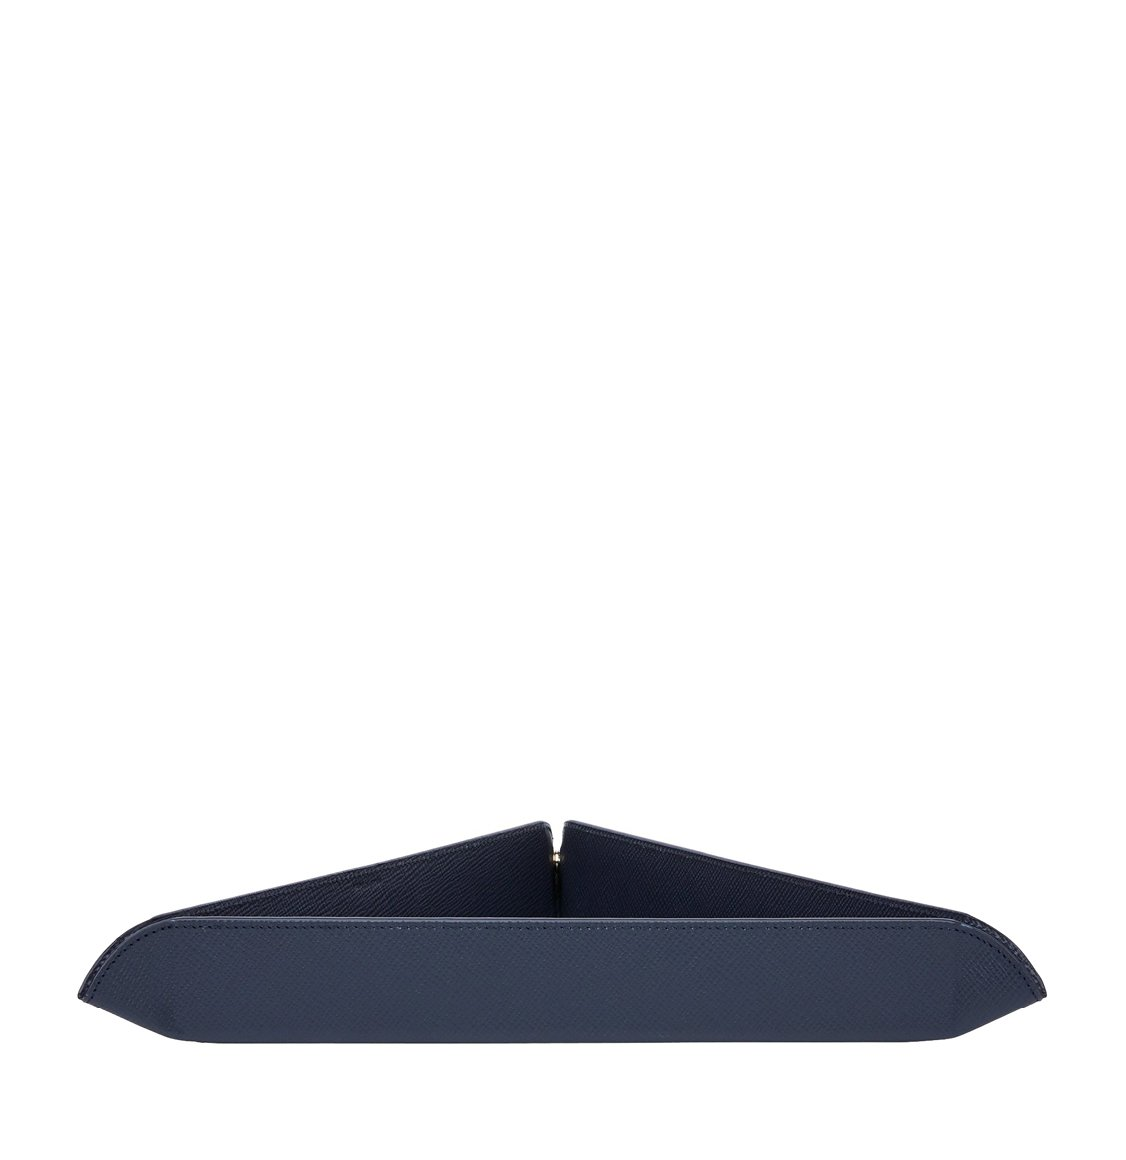 Smythson Panama Cross-Grain Leather Triangle Trinket Tray Navy